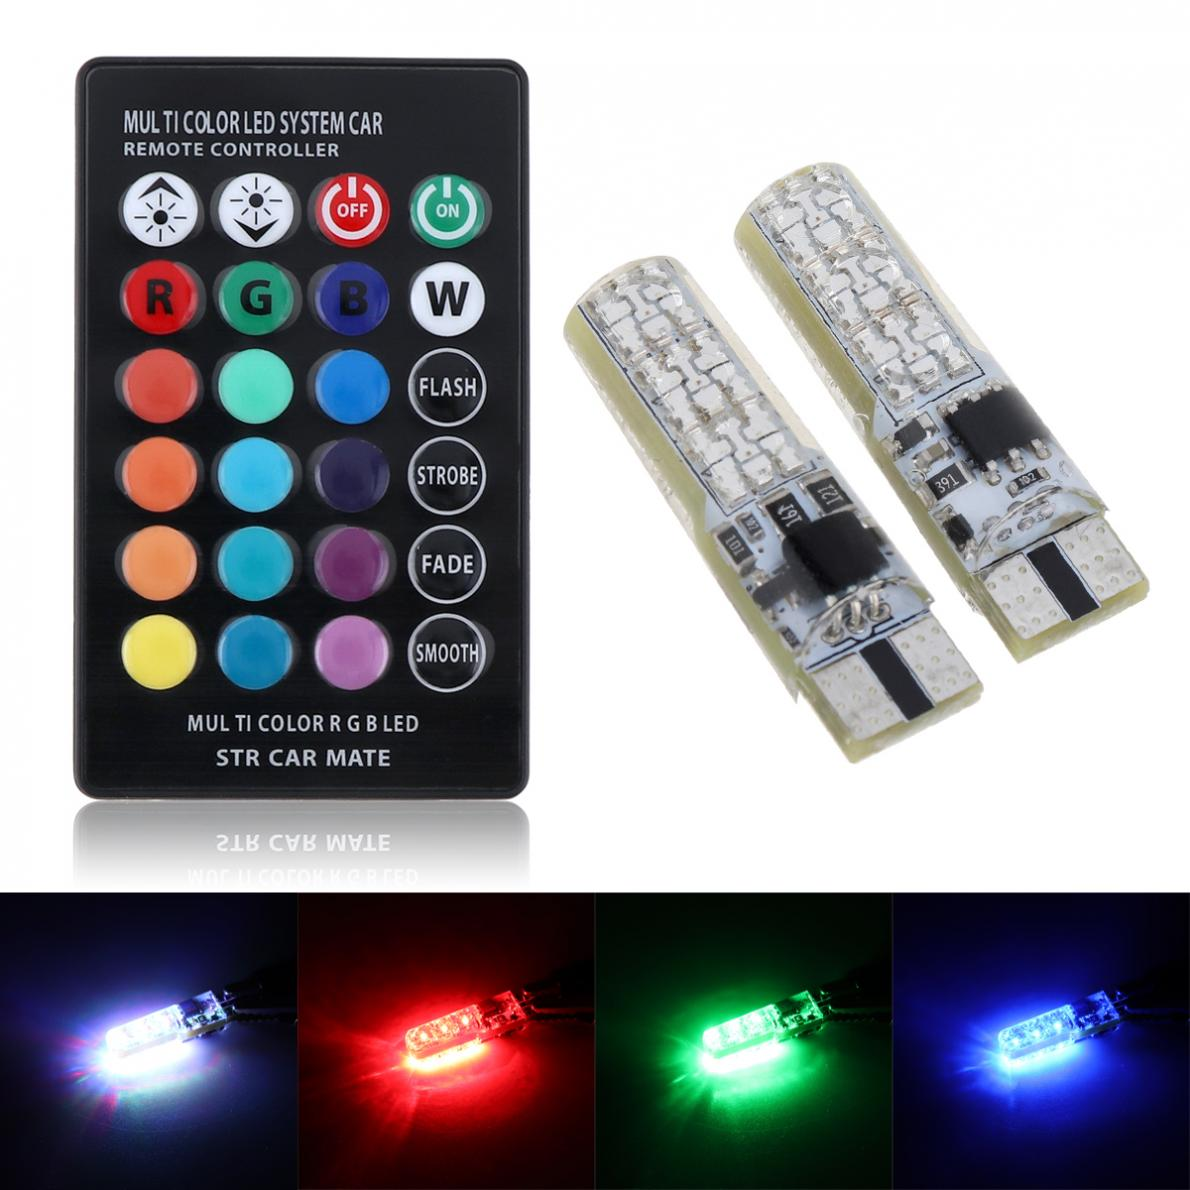 2Pcs / set 5050 SMD RGB LED T10 194 168 W5W car wedge light turn signal indoor dome wedge read light bulb with remote control 2x t10 w5w 168 194 smd 6 led 5050 remote control rgb car reading wedge lights for car tail light side parking door lighting